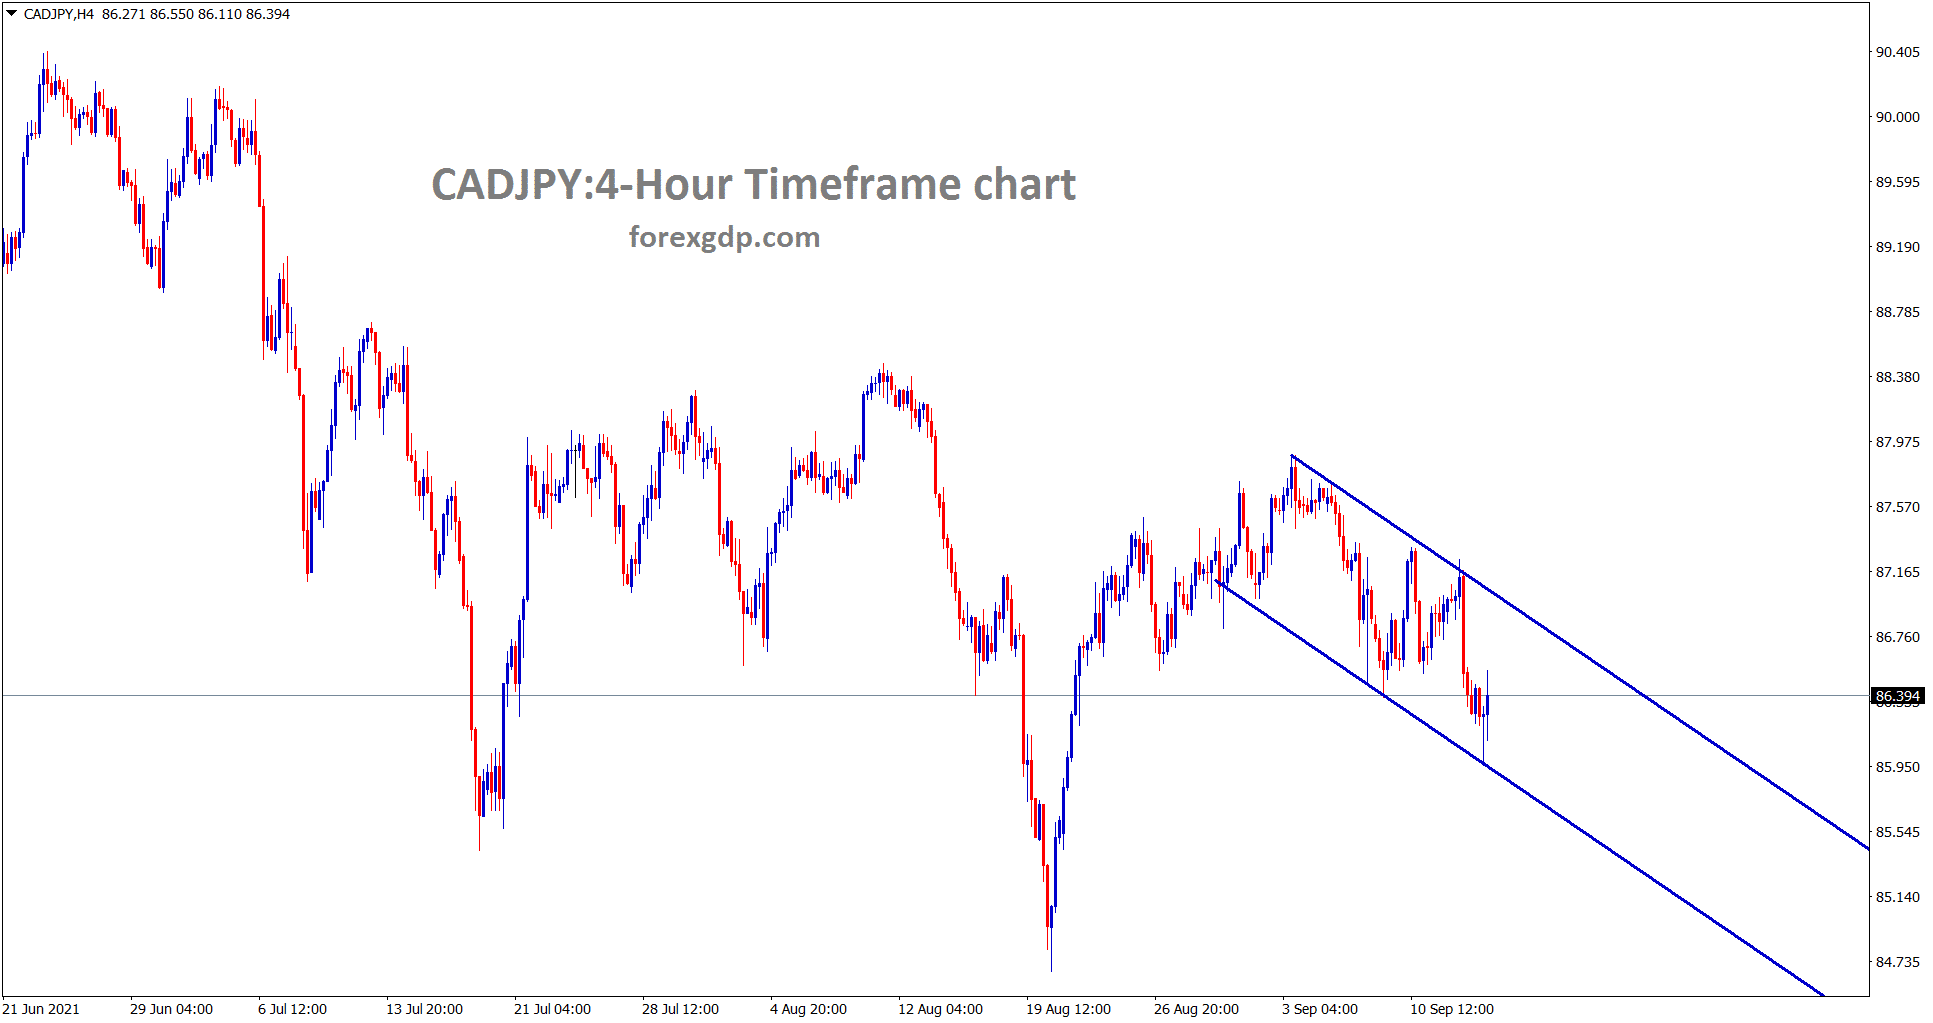 CADJPY bouncing back from the lower low level of a descending channel